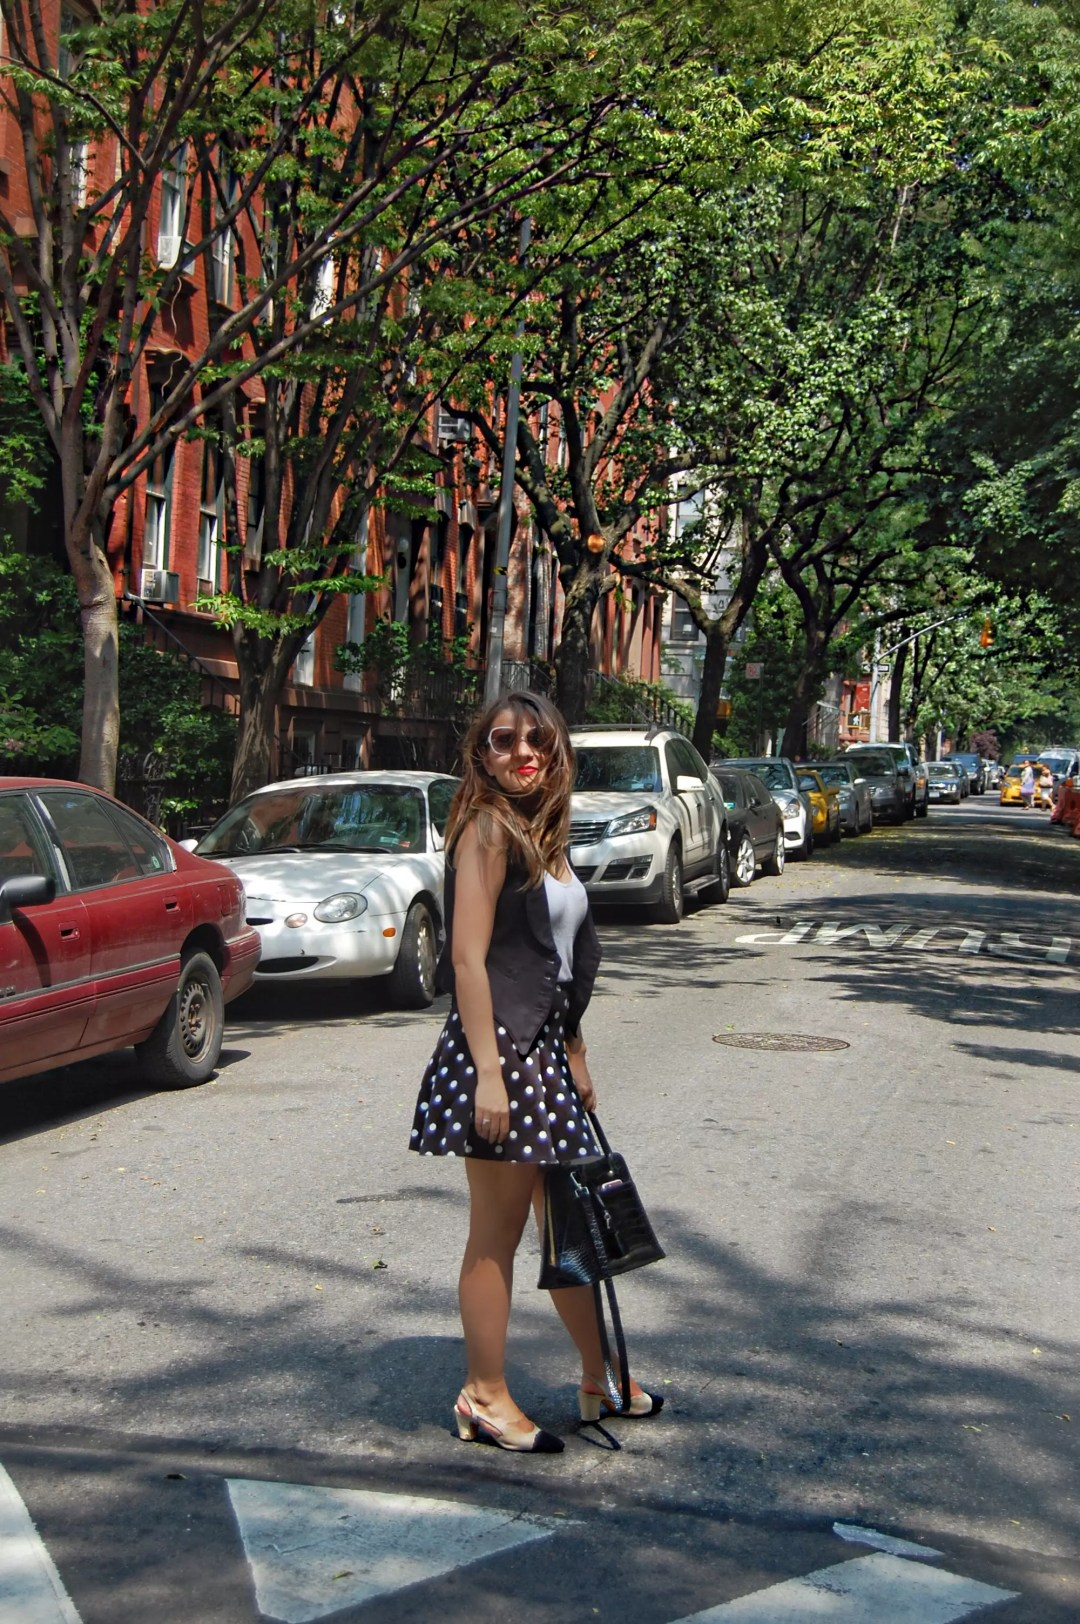 west_village_new_york_fashion_blogger_alley_girl6